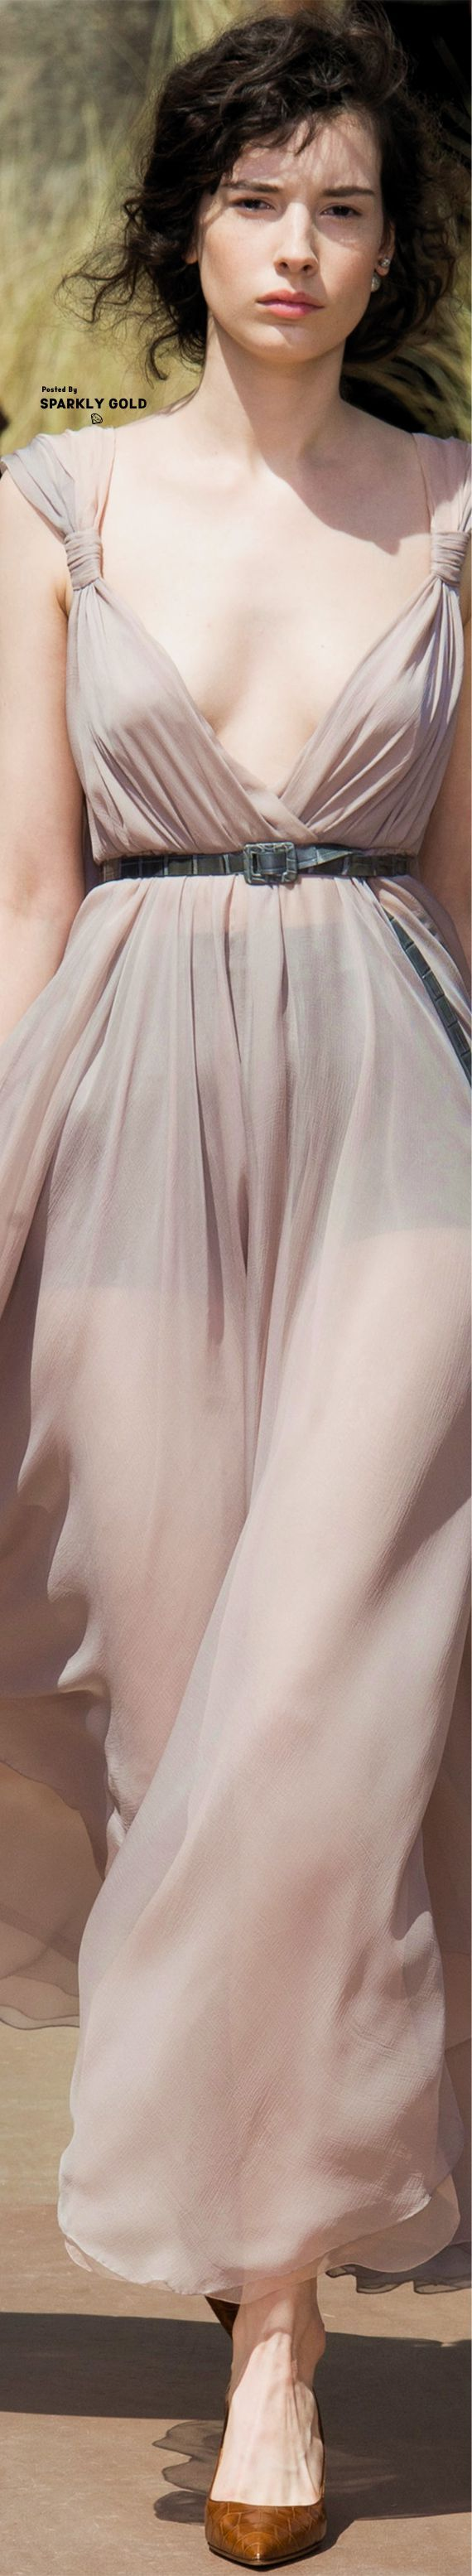 Christian Dior Fal 2017 Couture